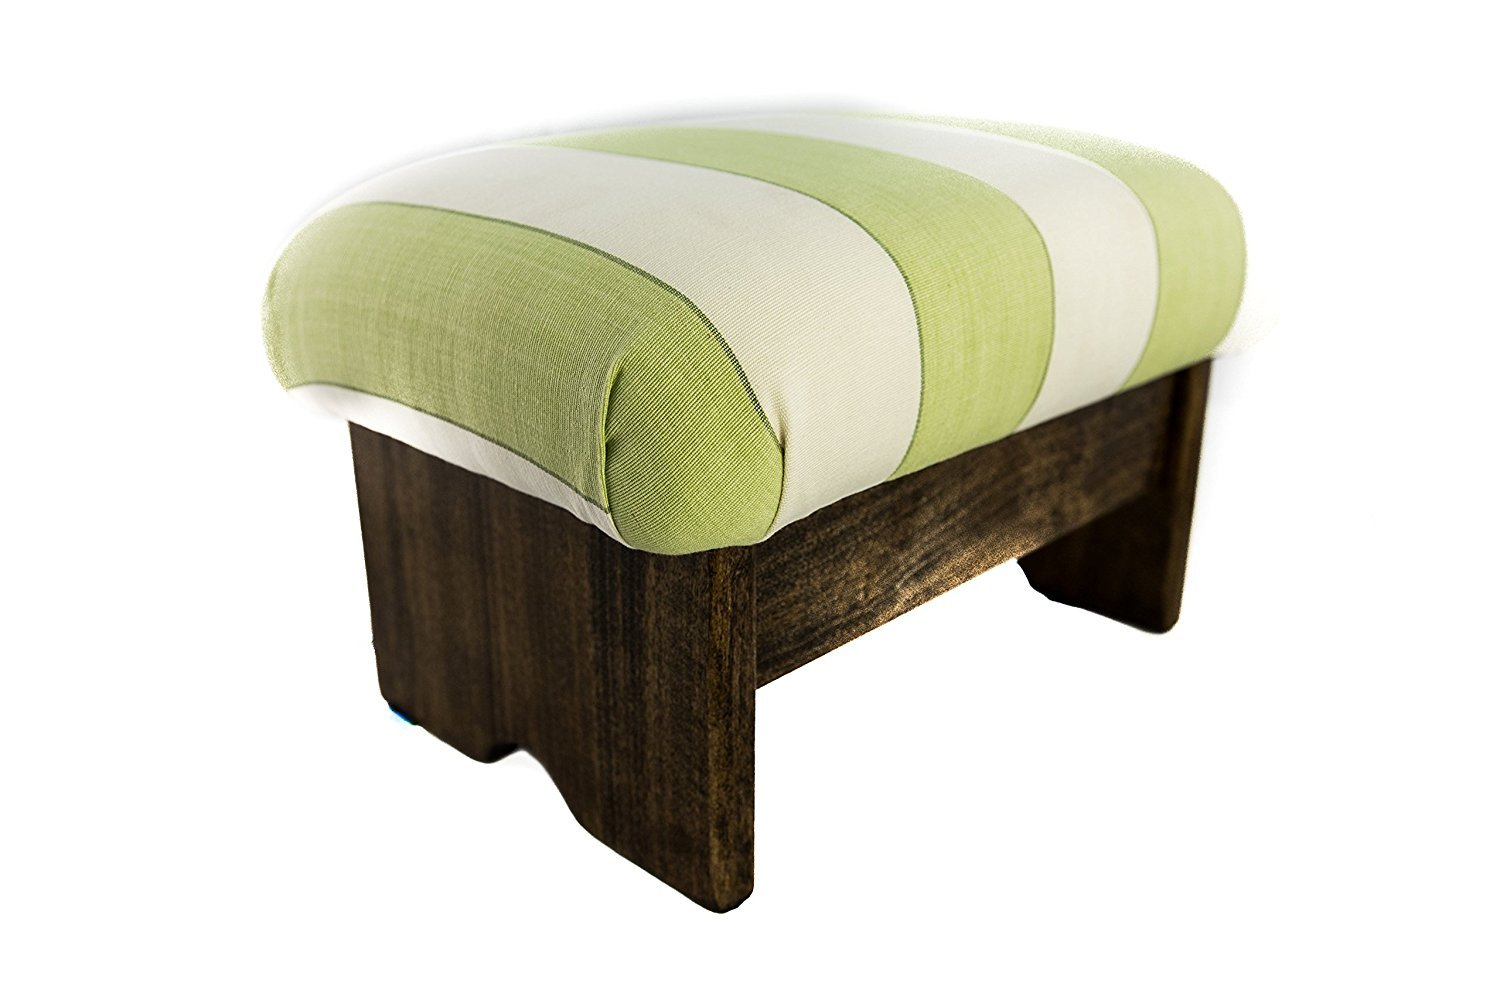 KR Ideas Padded Foot Stool Stripe Pesto (Made In the USA) (9'' Tall - Walnut Stain) by KR Ideas